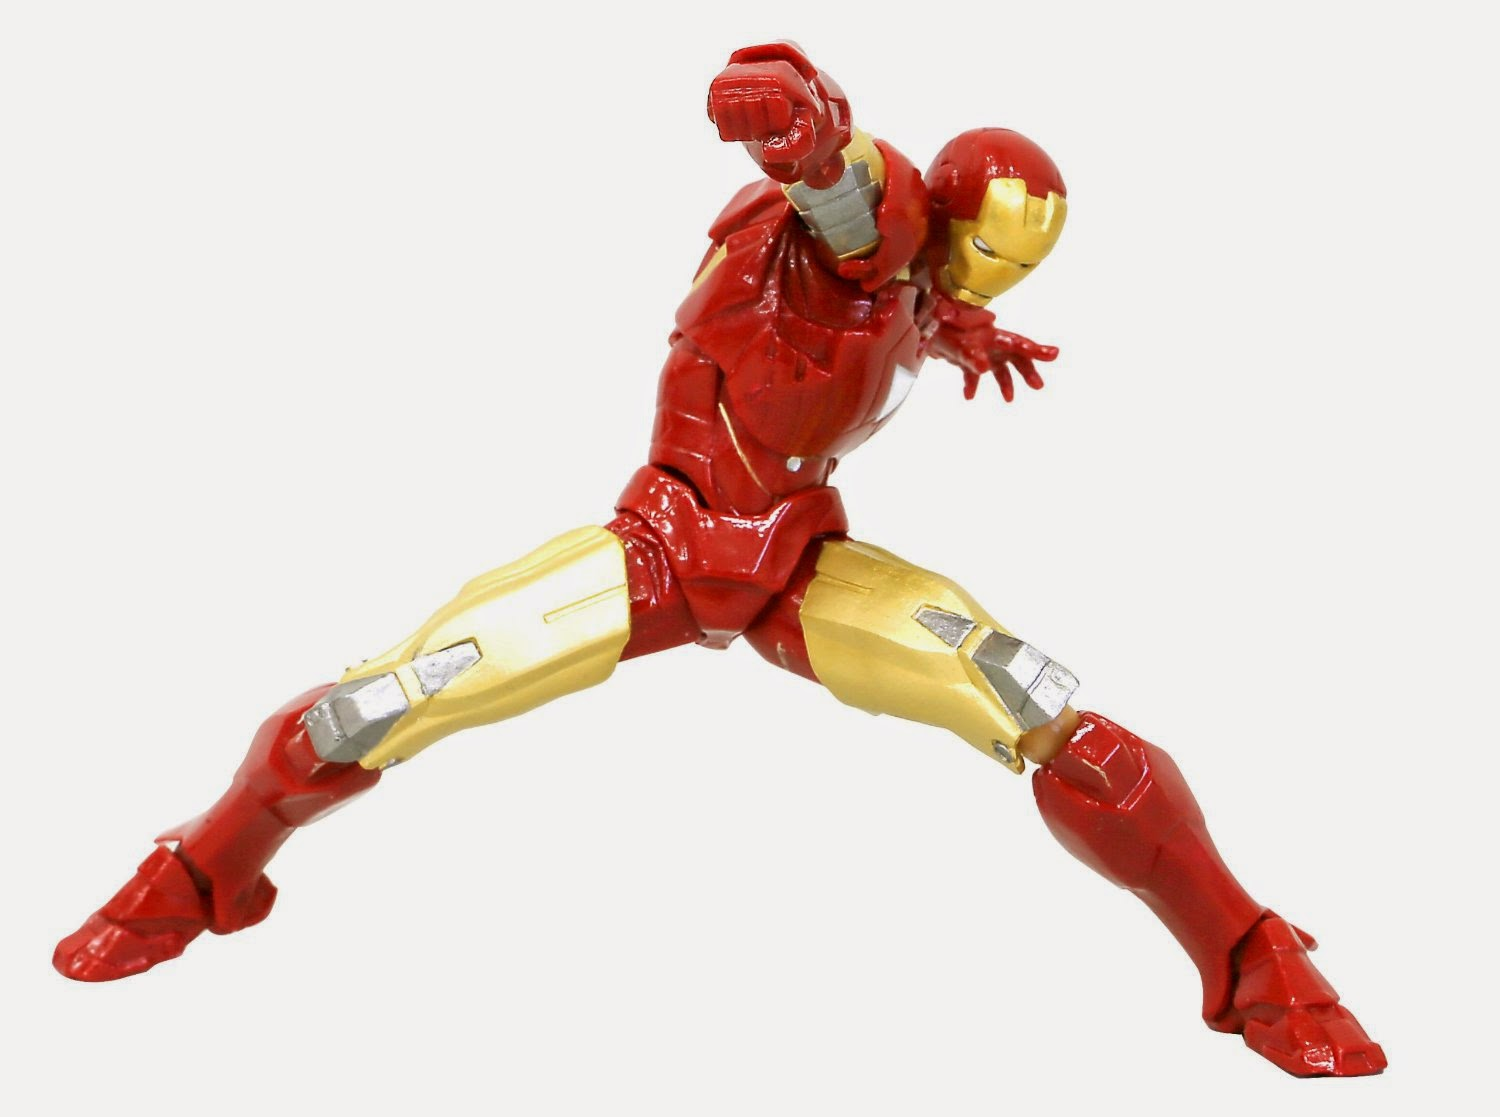 Firestarter 39 s blog kaiyodo to distribute revol mini iron - Mini iron man ...